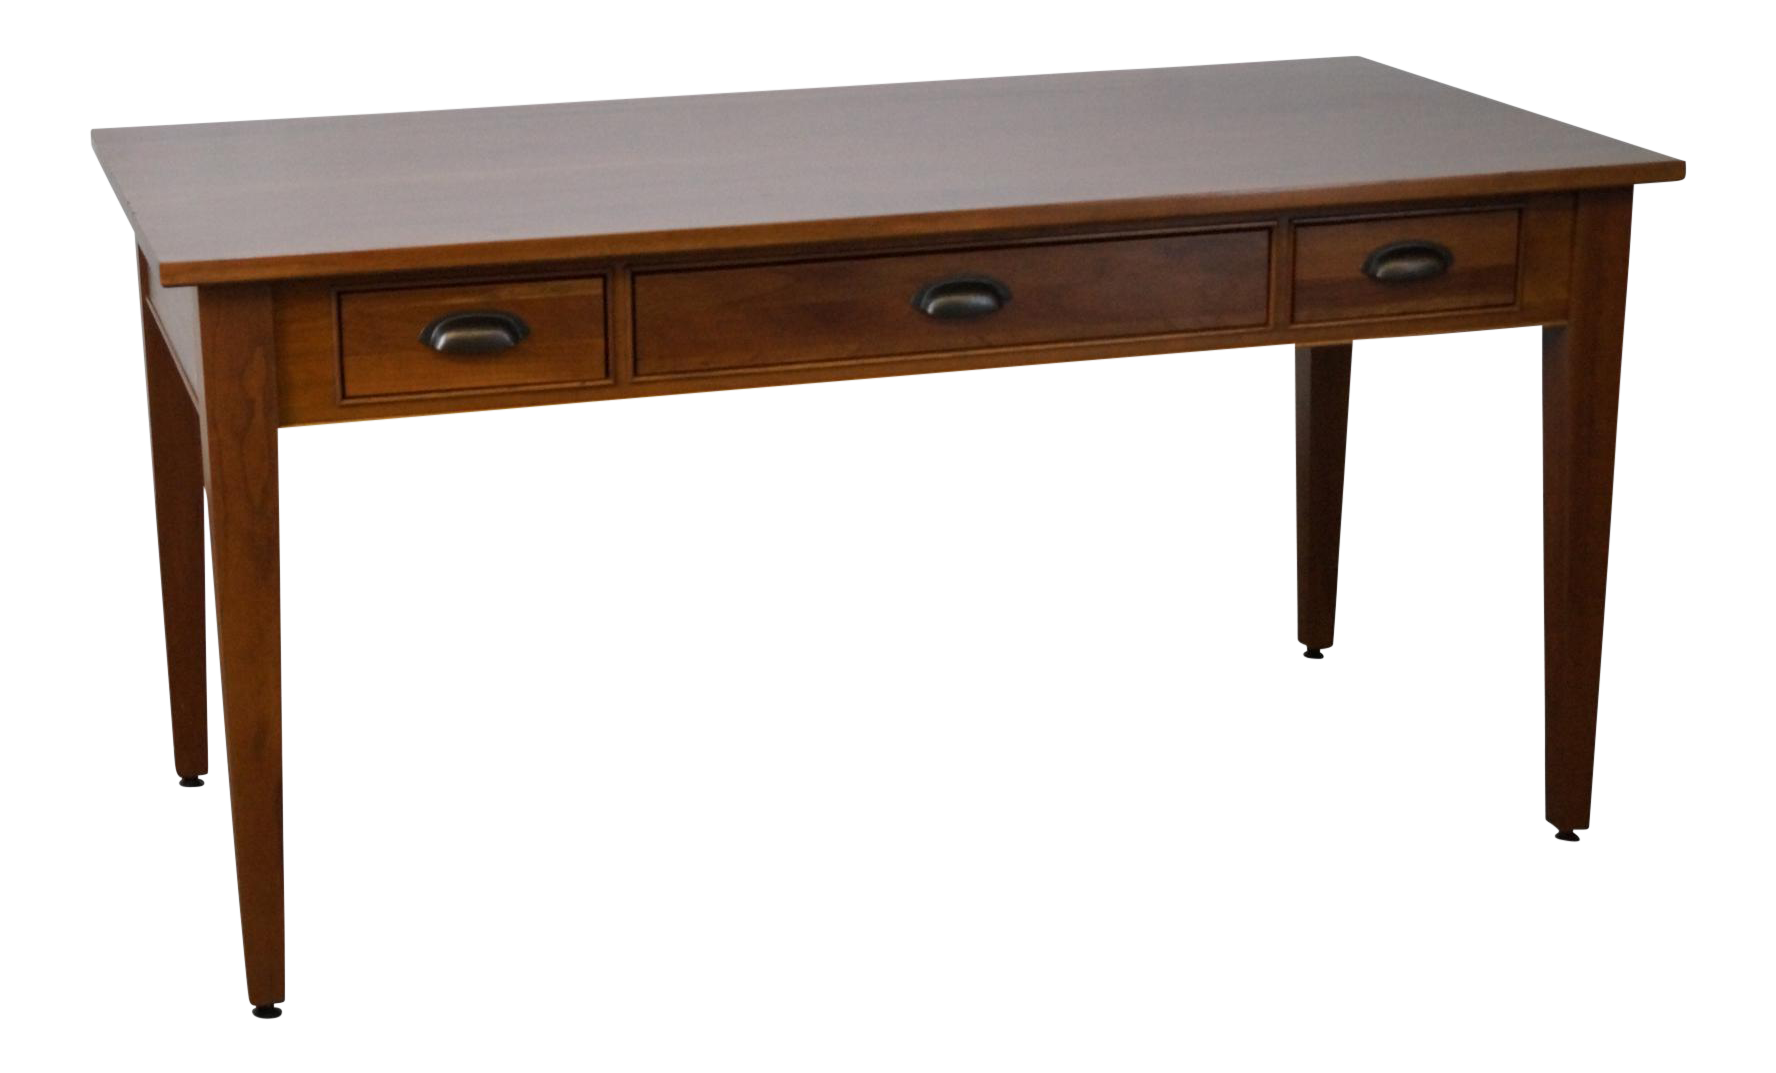 Restoration Hardware Solid Cherry Writing Desk By Michaels. Small Cherry Computer Desk. Simple Dining Table. Round Coffee Table With Stools. Treadmill Desks. Desk Organiser. Fusion Pool Table. Soft Drawer Closers. Vintage Roll Top Desk